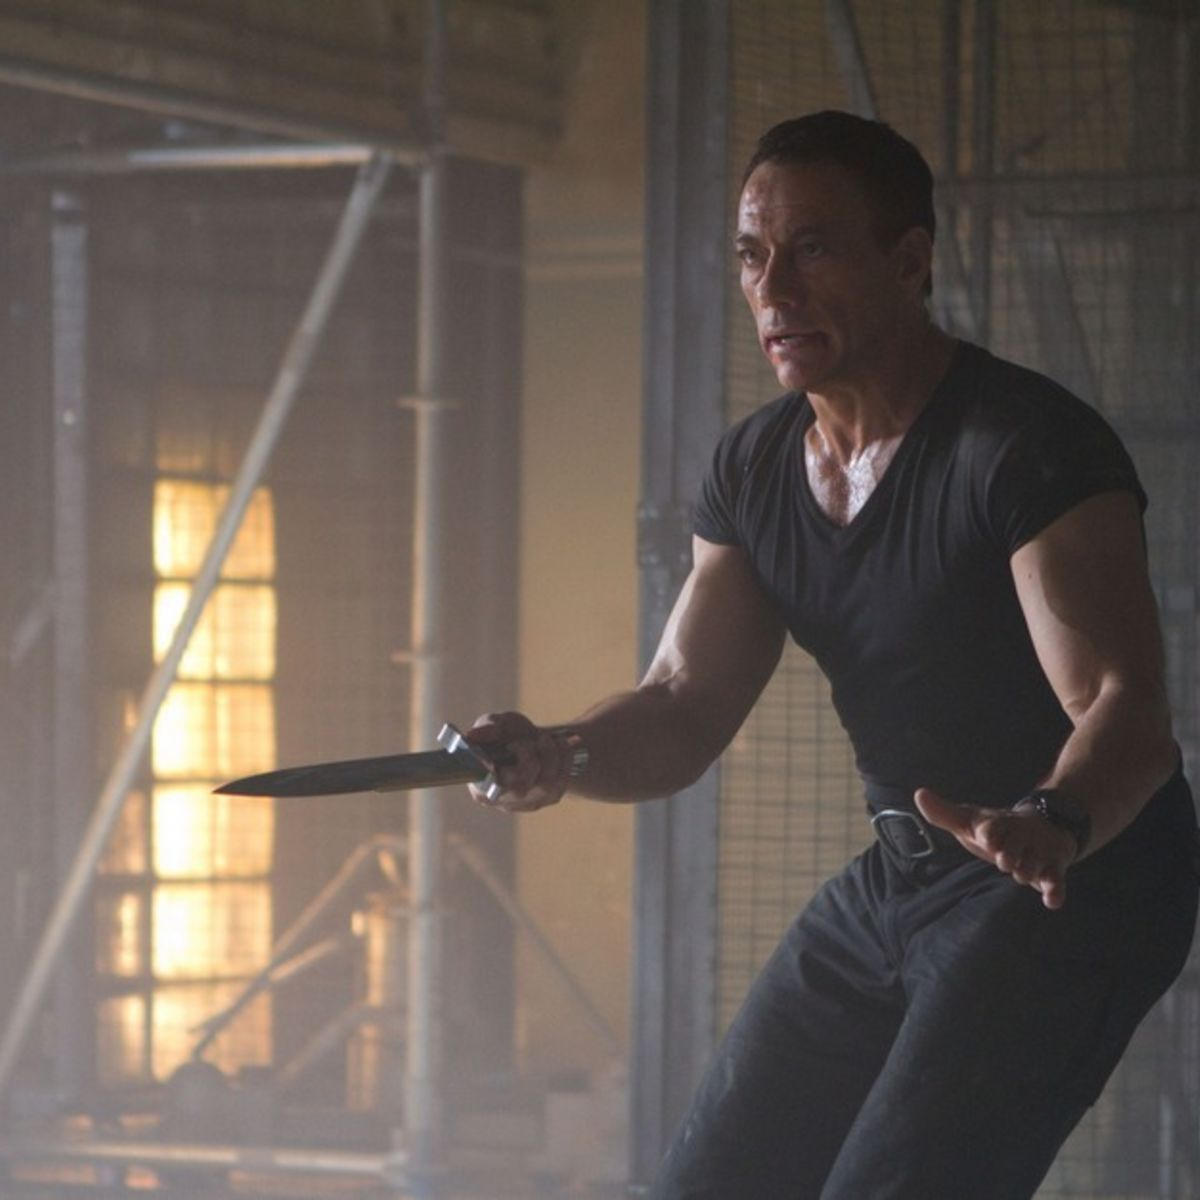 Jean-Claude-Van-Damme-The-Expendables2.jpg